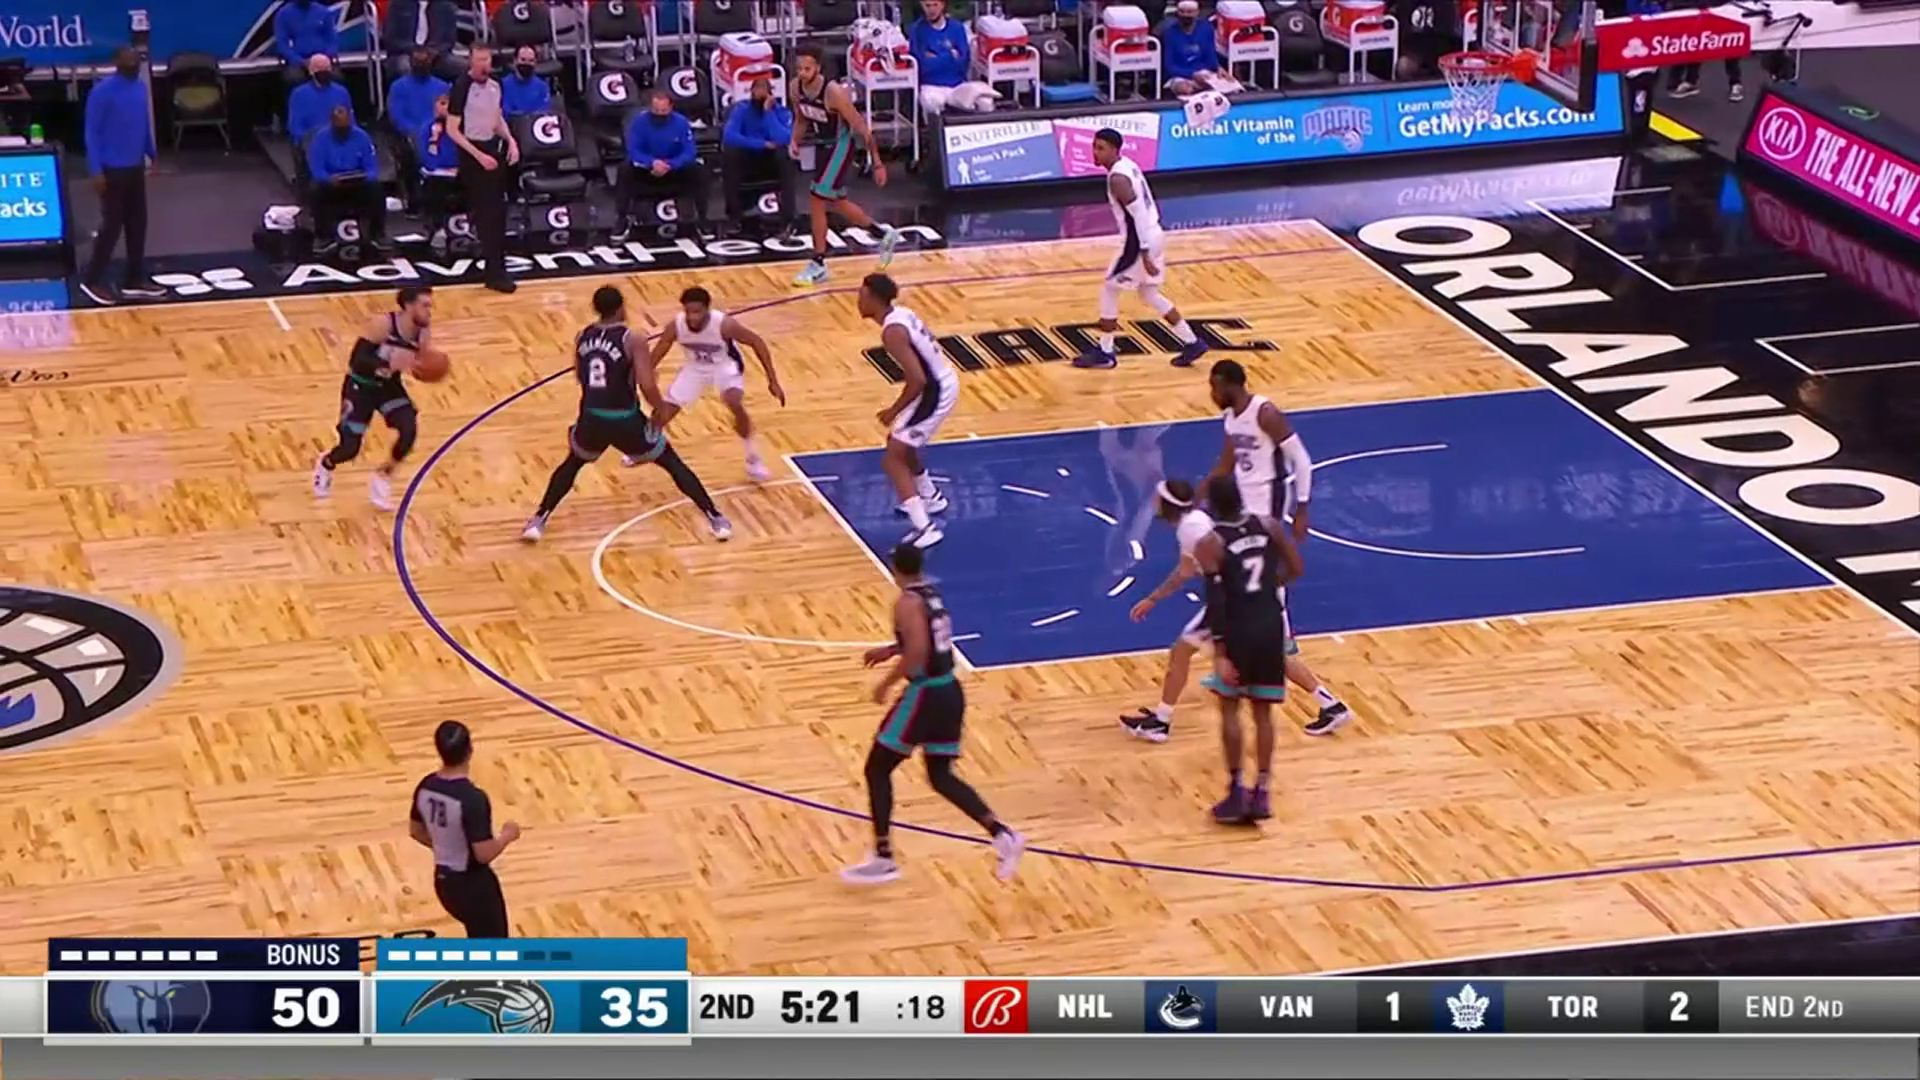 Tyus Jones with the smooth floater